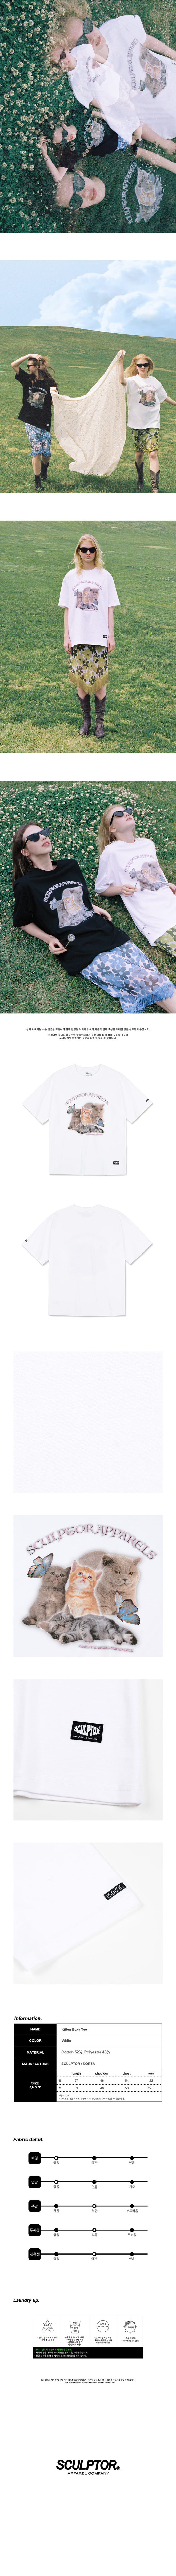 스컬프터(SCULPTOR) Kitten Boxy Tee [WHITE]